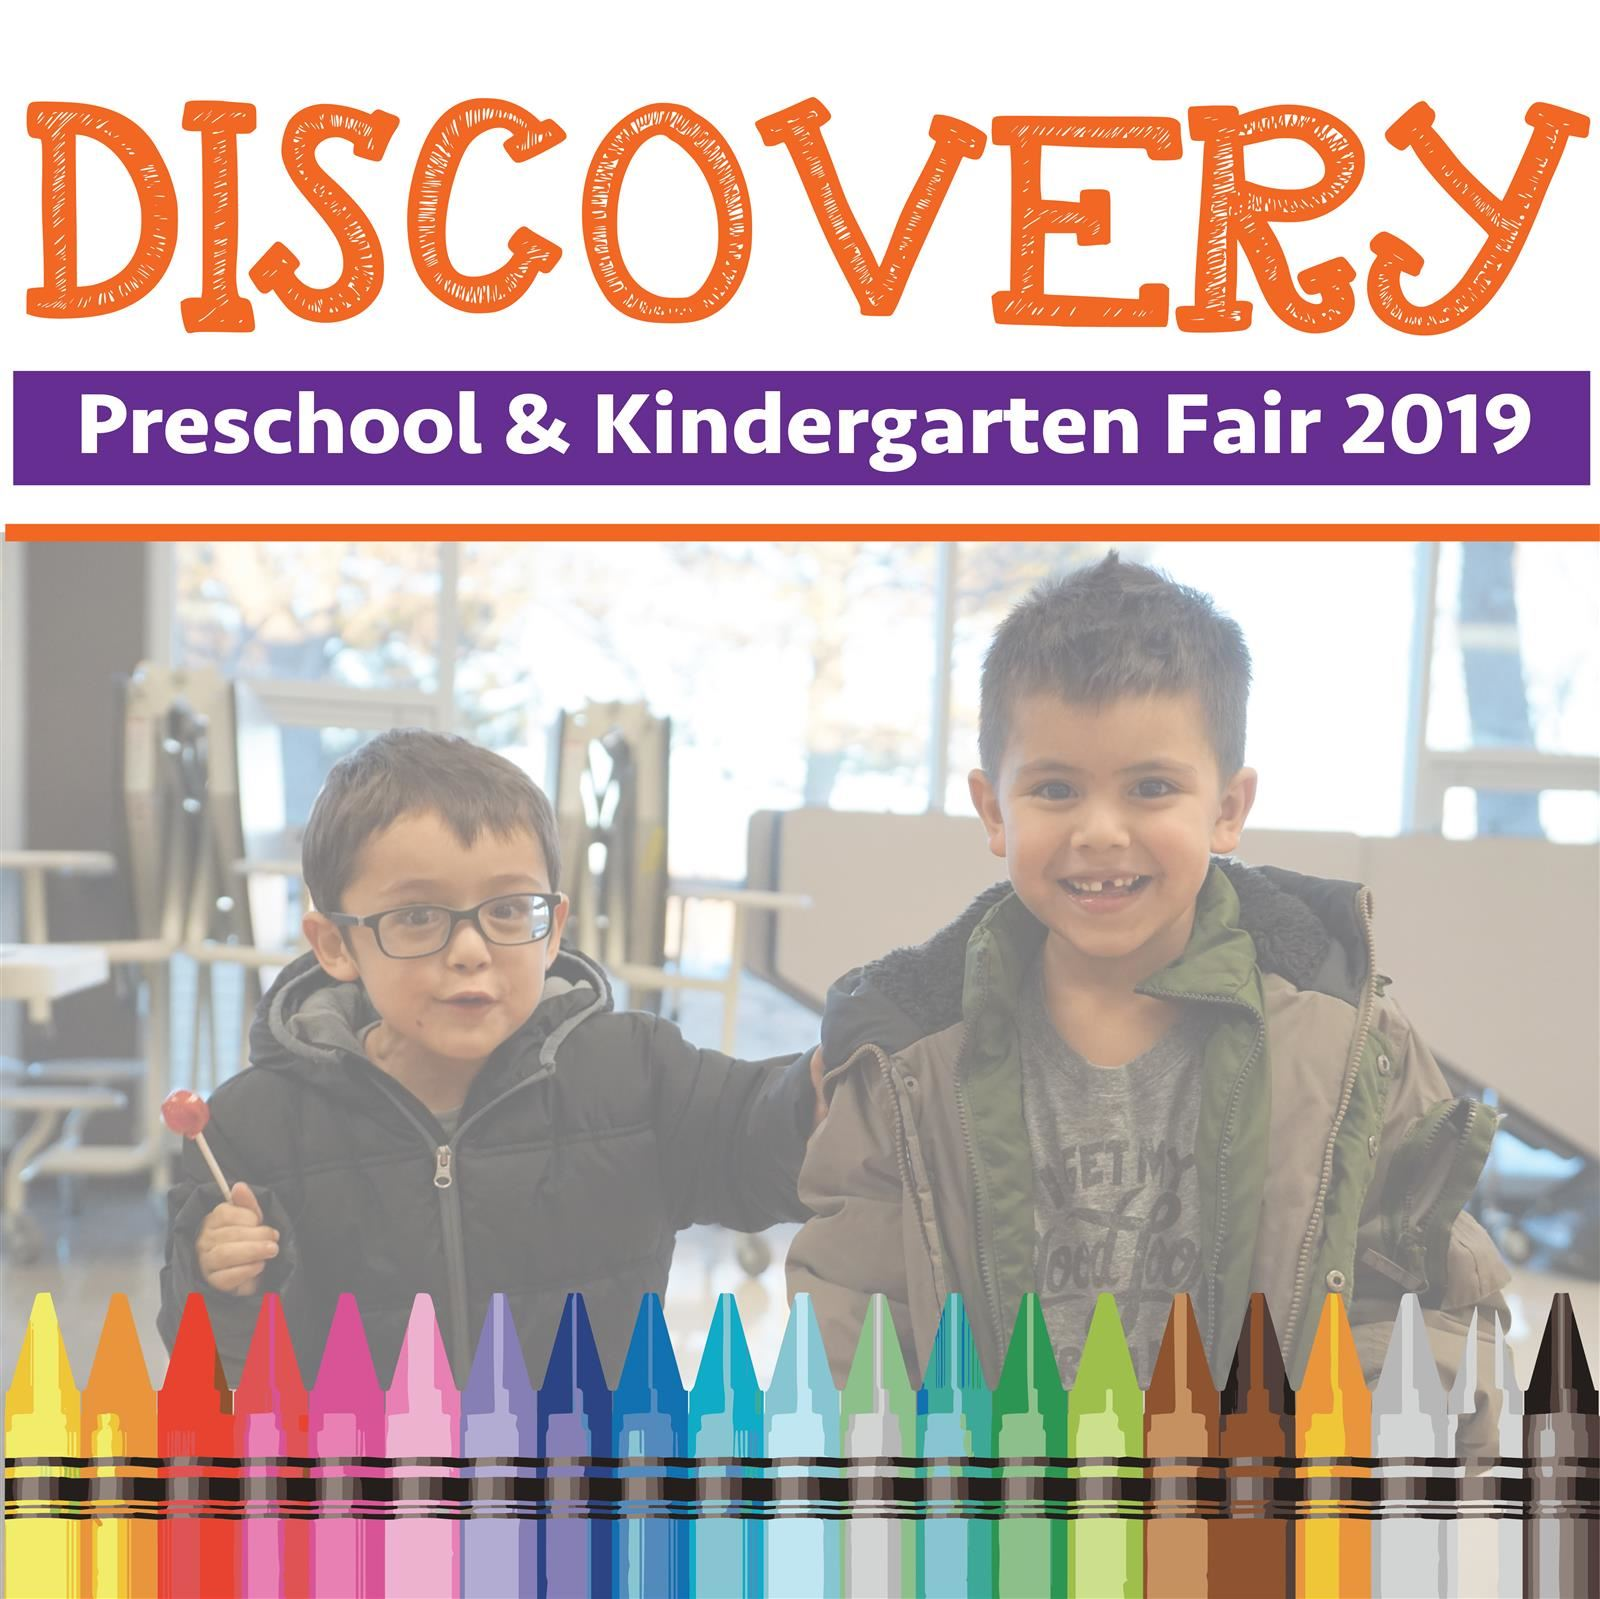 Discovery: Preschool & Kindergarten Fair 2019